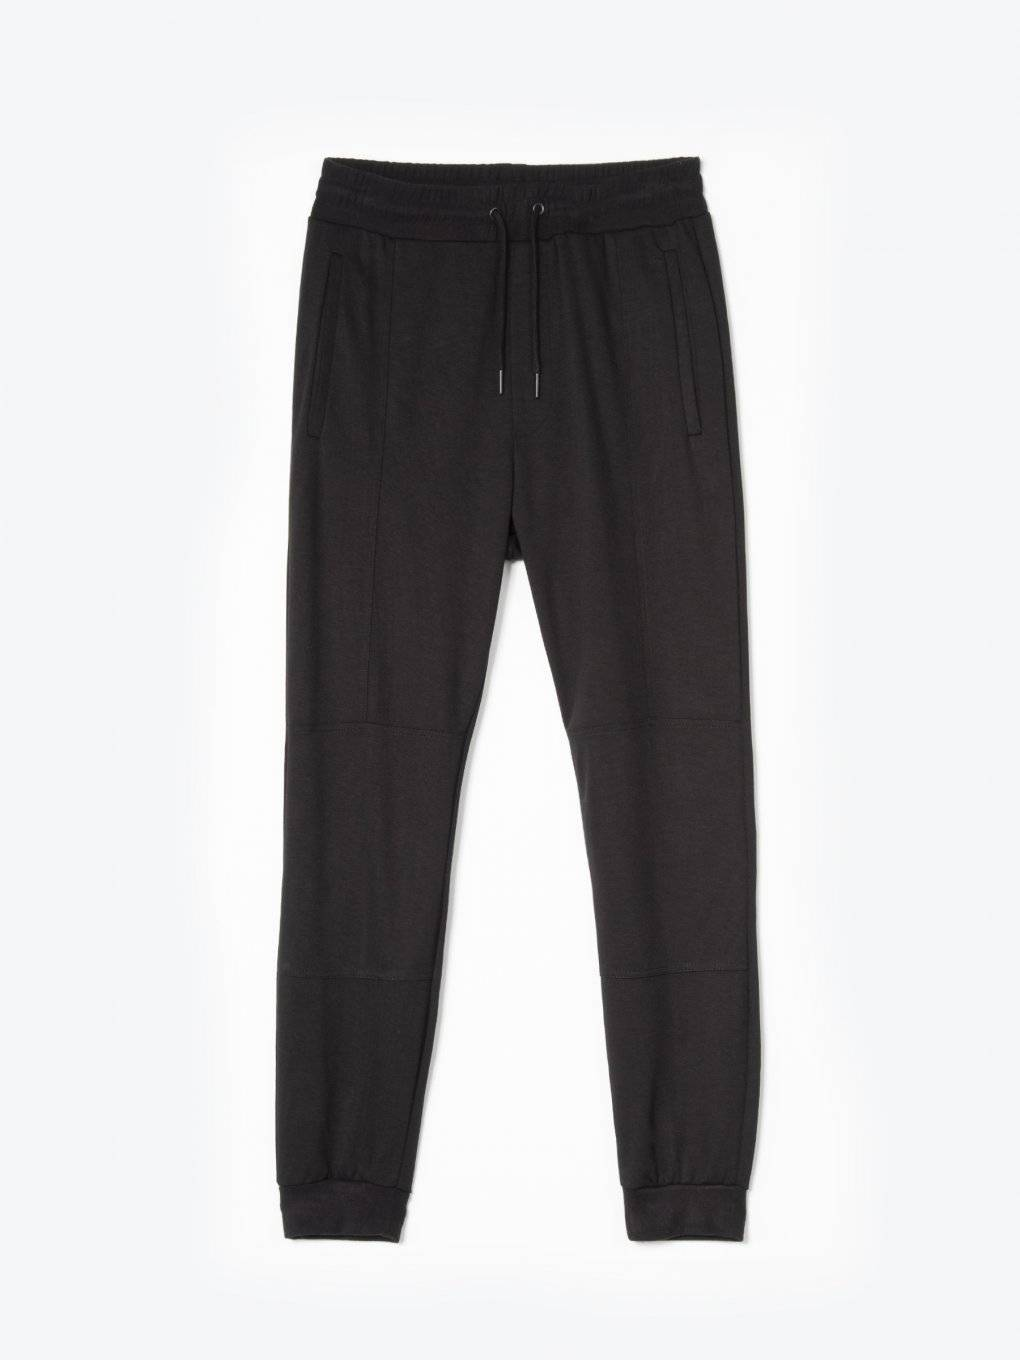 Cut and sew sweatpants